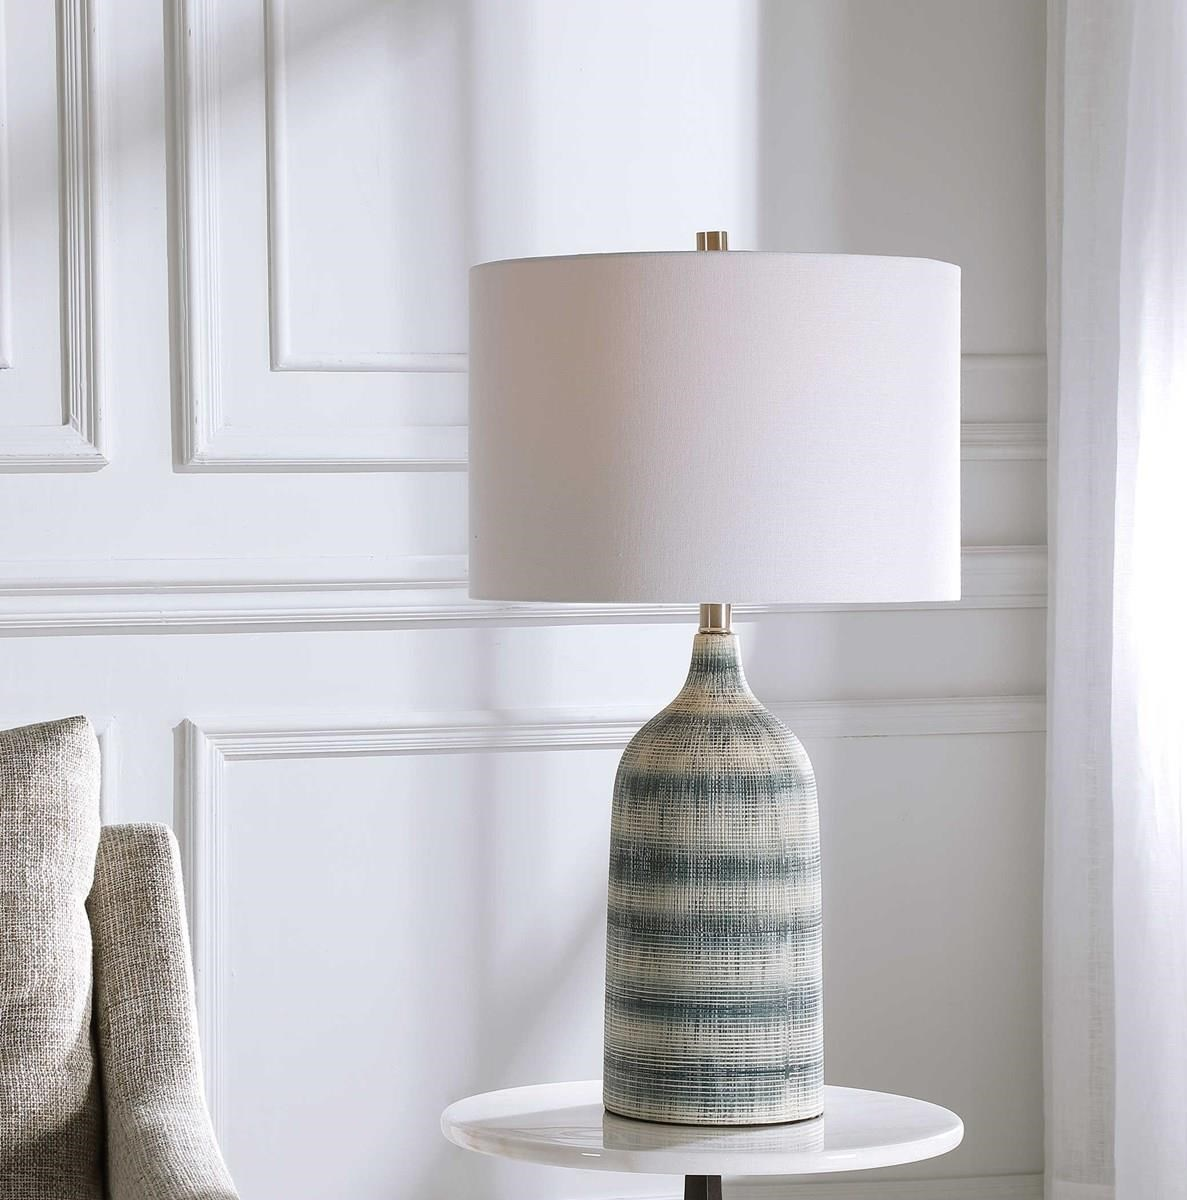 Table Lamps BRYNLEE TABLE LAMP by Unique at Walker's Furniture